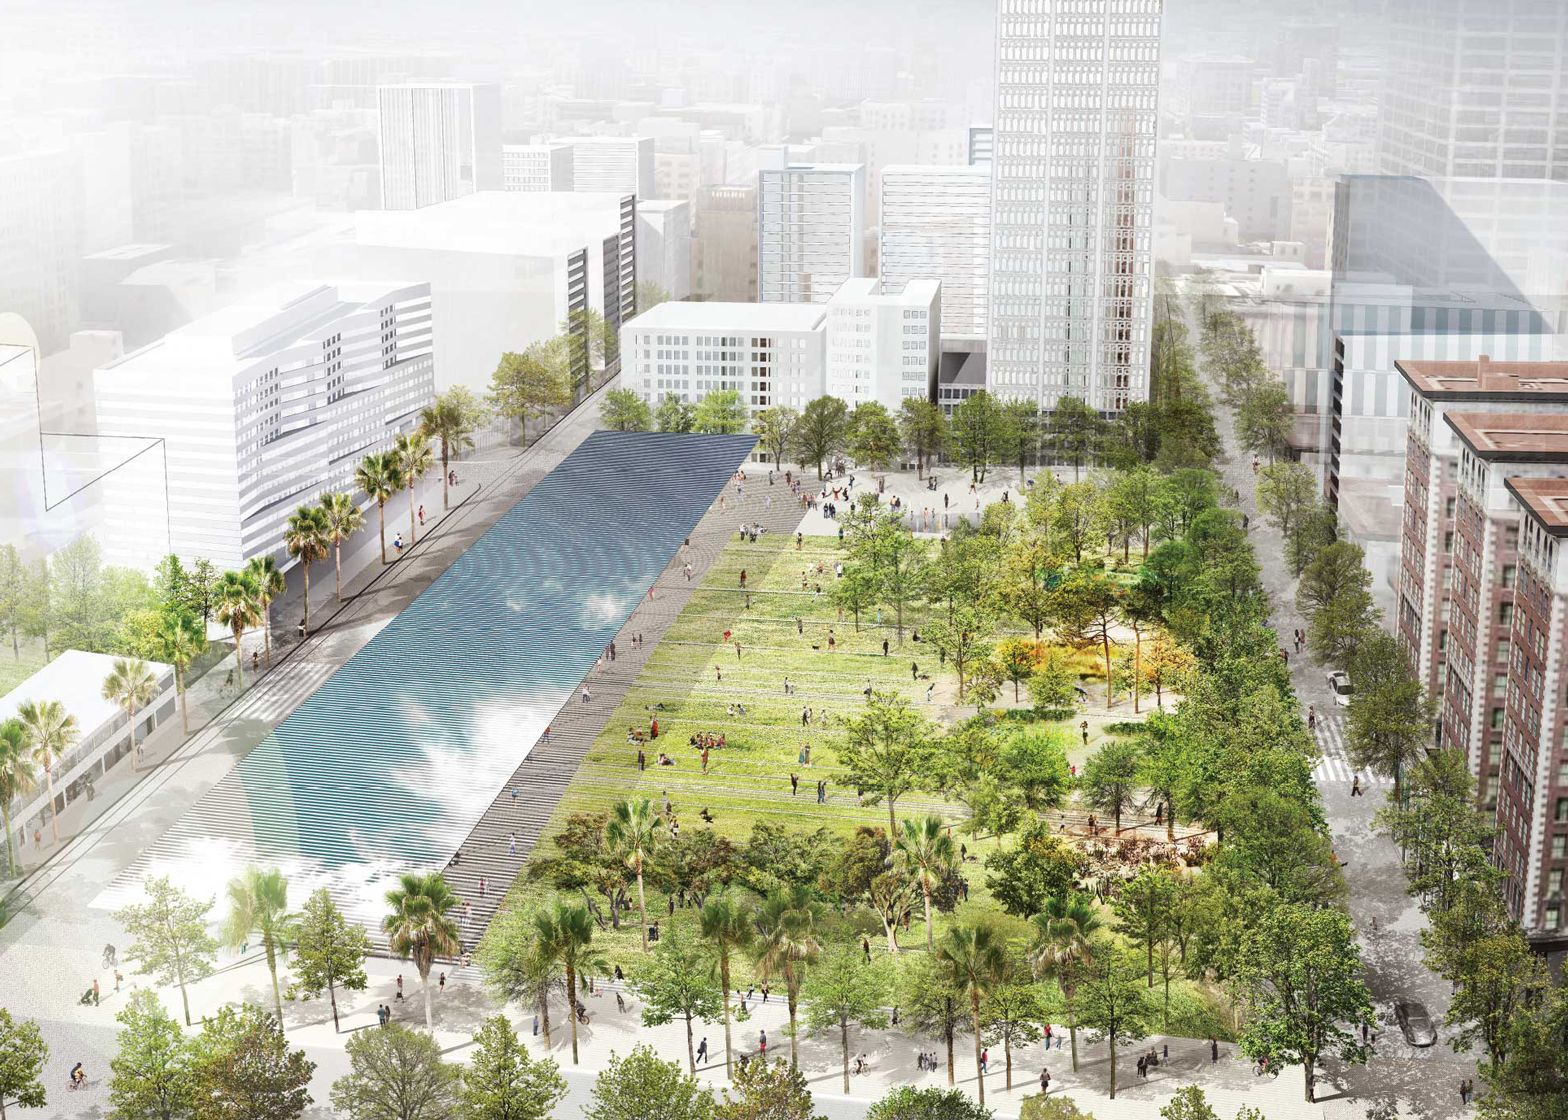 Los Angeles Landscape Architects Landscape Architecture - Google-søgning | Urban Renderings